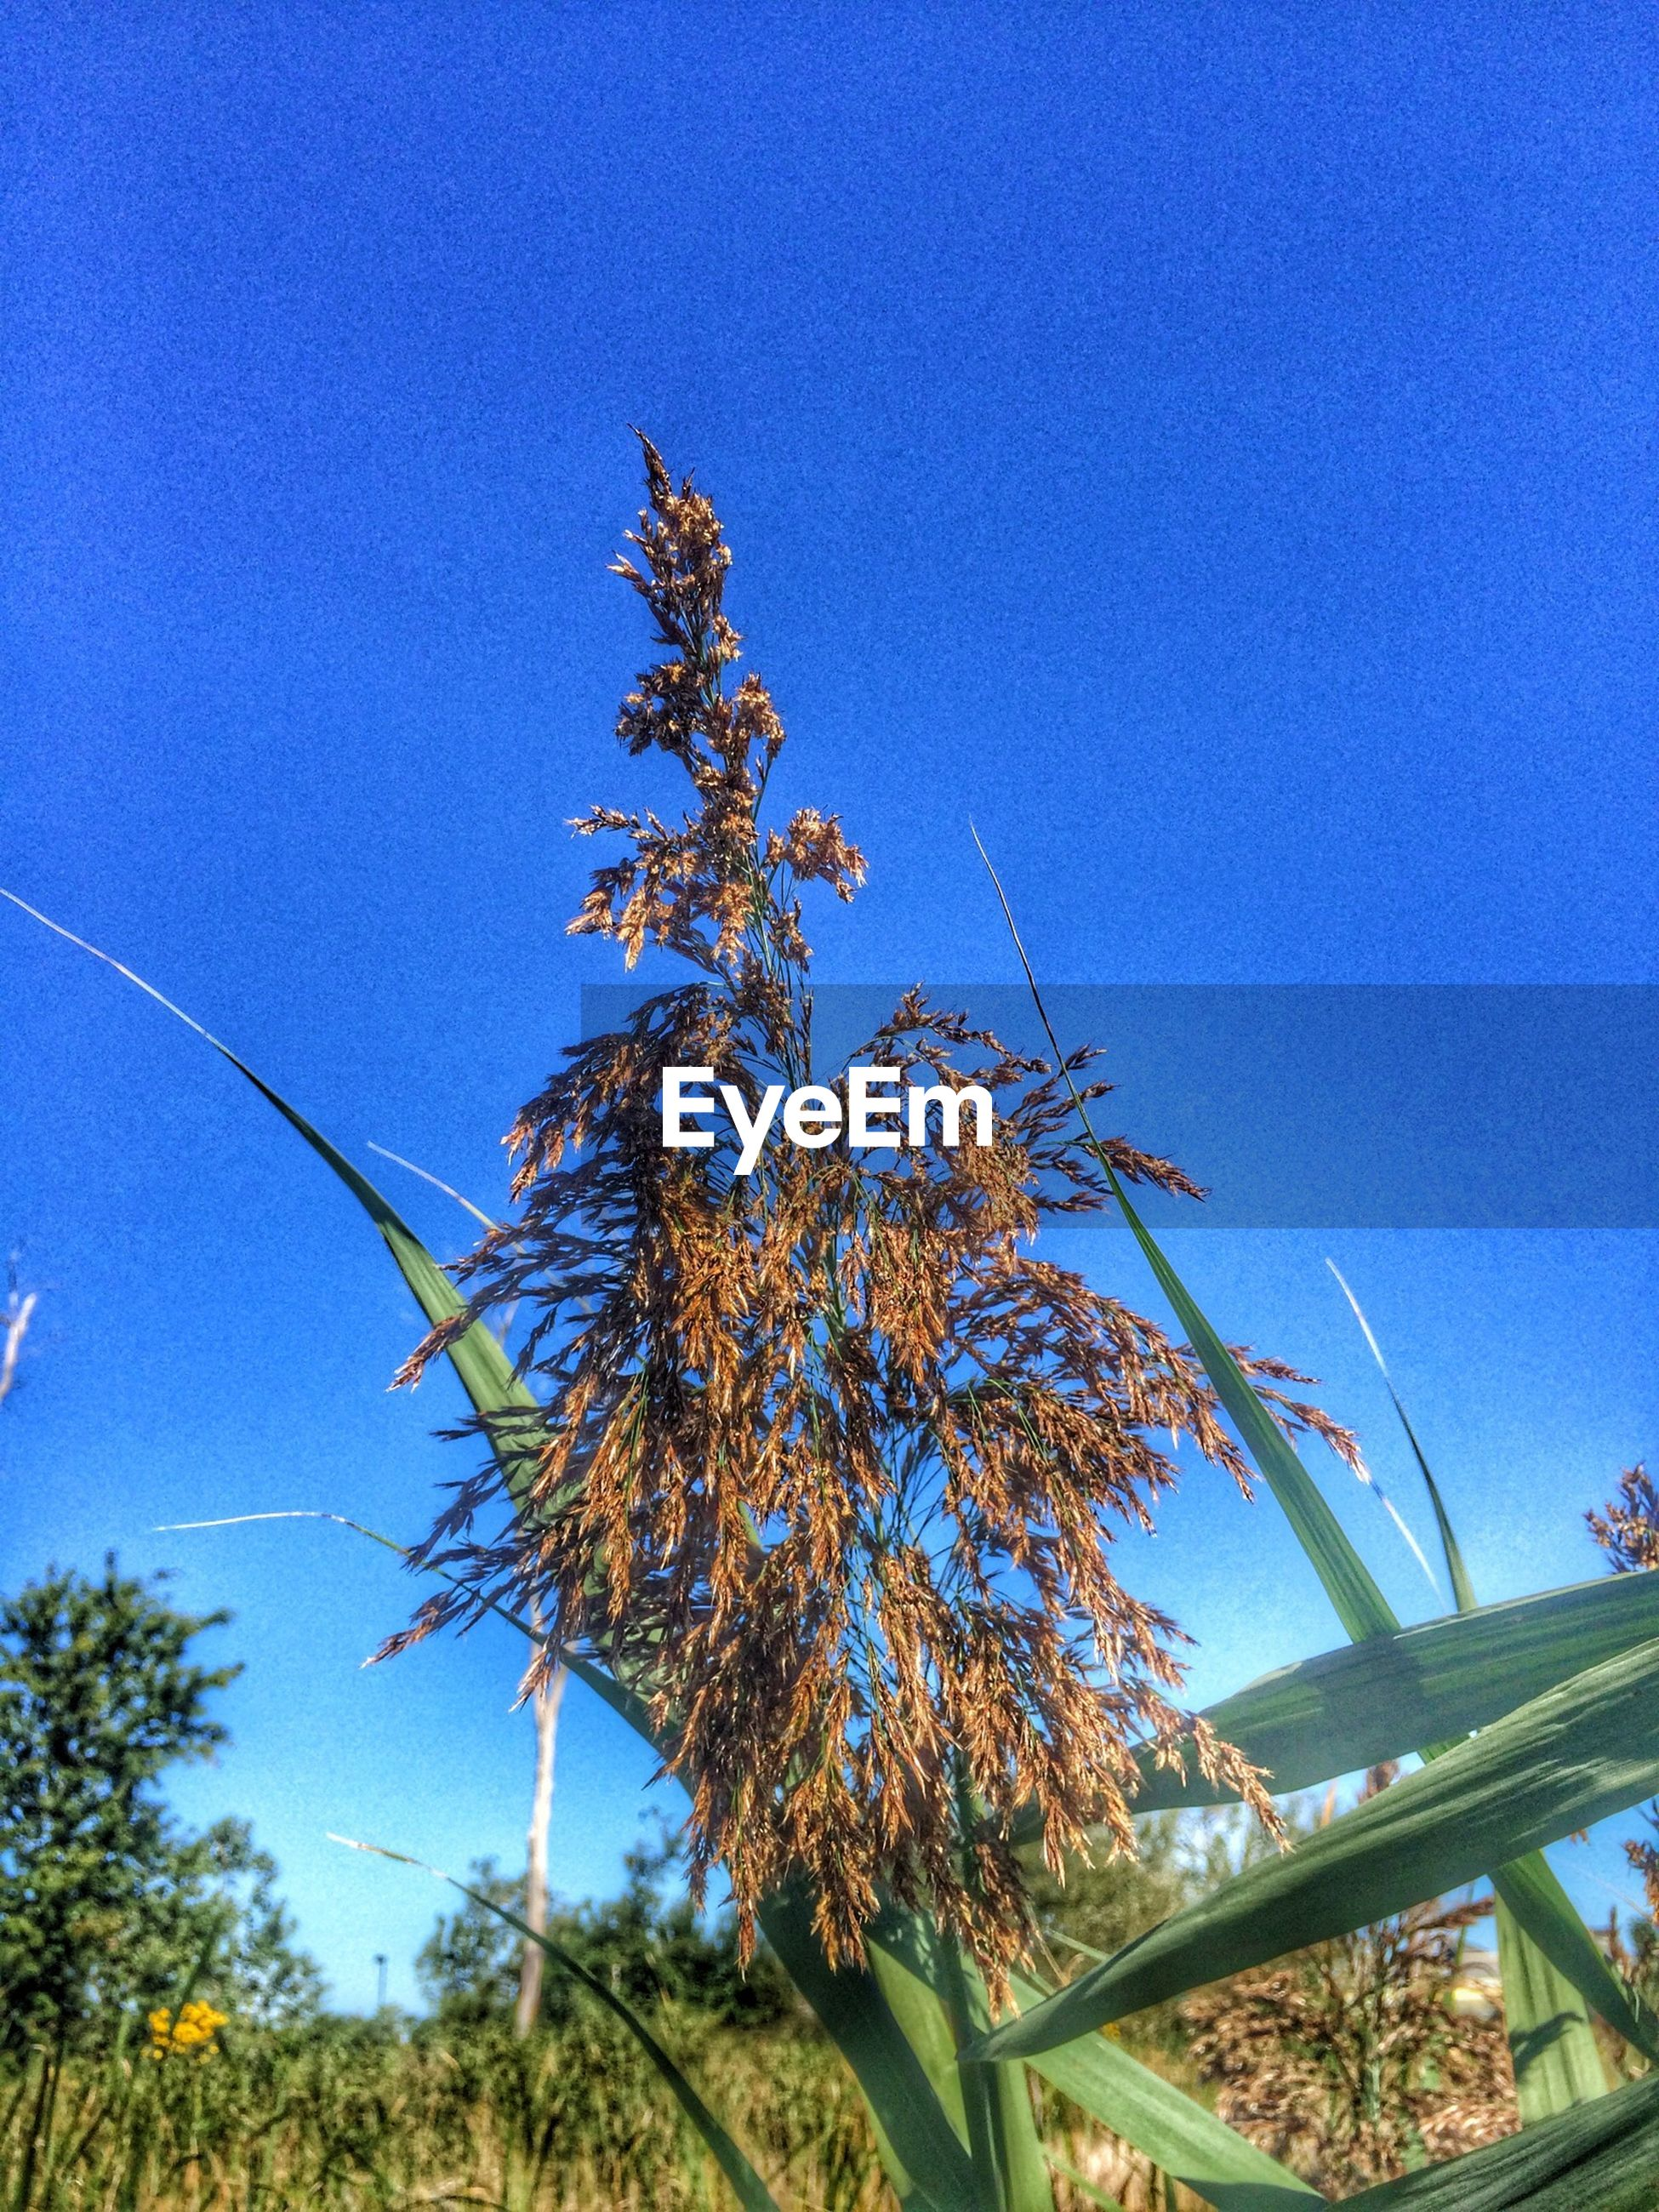 clear sky, blue, tree, growth, low angle view, copy space, branch, nature, beauty in nature, sunlight, tranquility, plant, outdoors, day, no people, sky, scenics, tranquil scene, growing, sunny